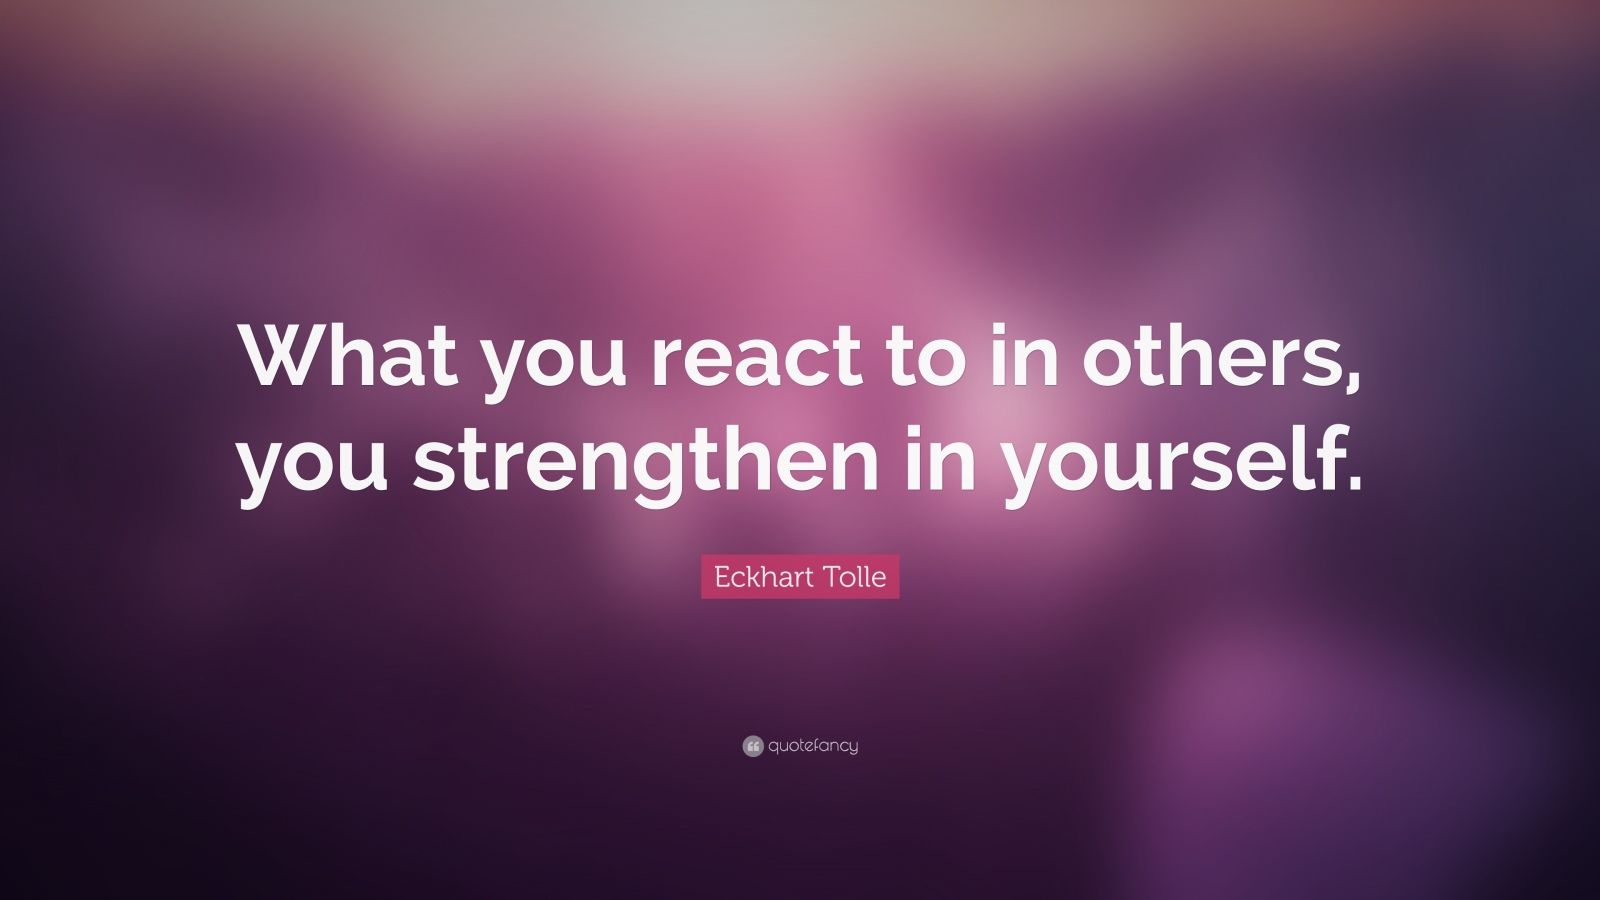 """Eckhart Tolle Quote: """"What you react to in others, you strengthen in yourself."""""""